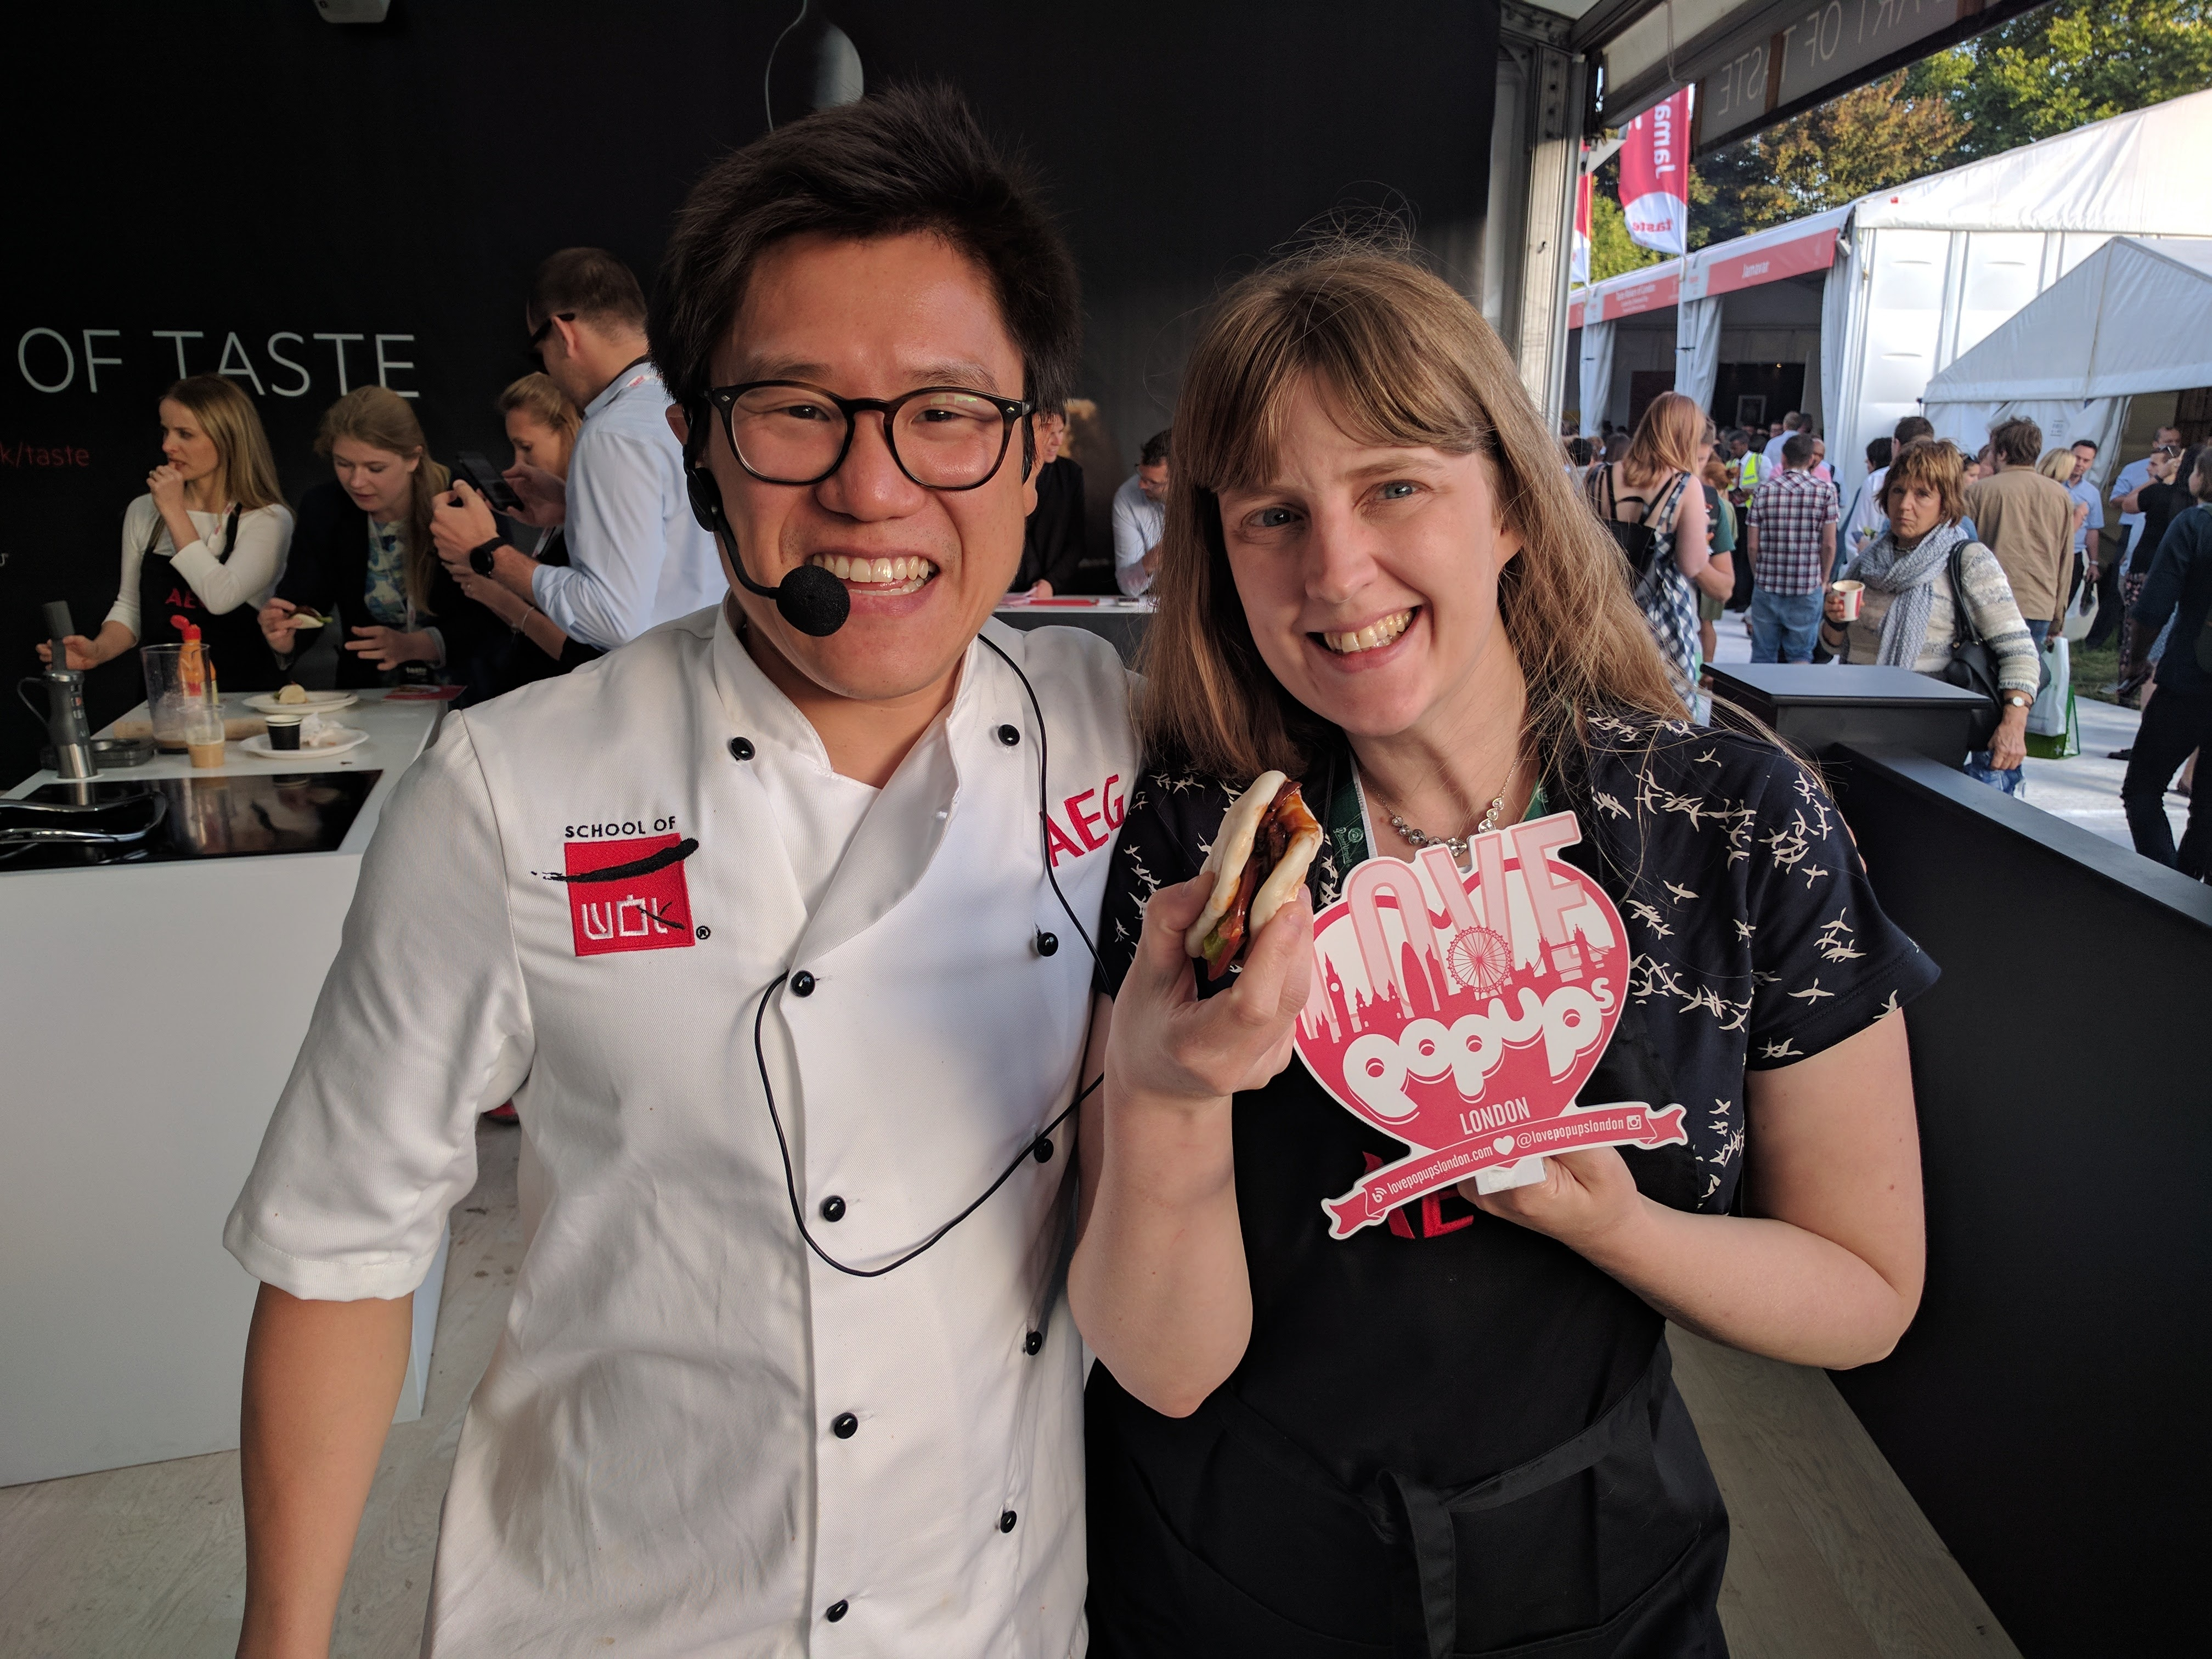 Taste of London Jeremy Pang and me